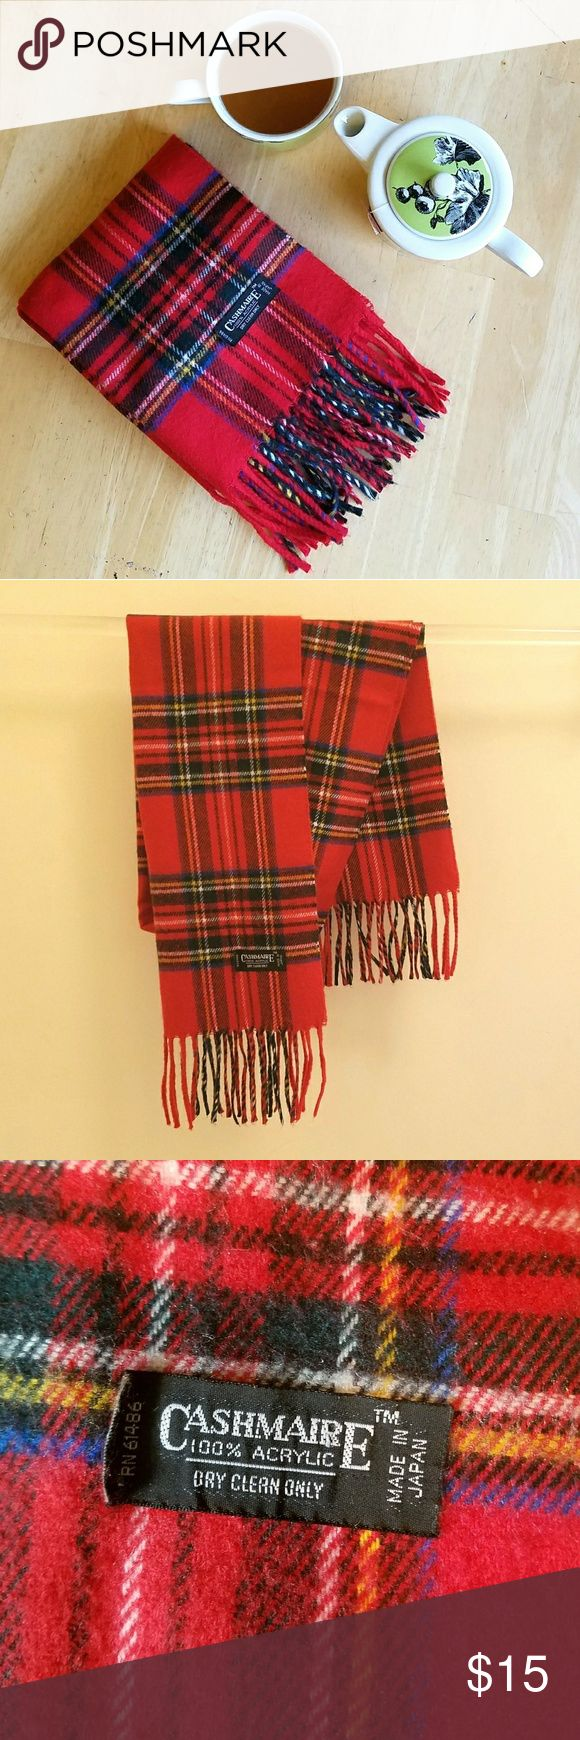 "Red Plaid Scarf A red plaid scarf made 100% acrylic chasmere very soft and cozy. Measurements are 47"" long (minus the tassles) and 11"" wide. In excellent condition Accessories Scarves & Wraps"